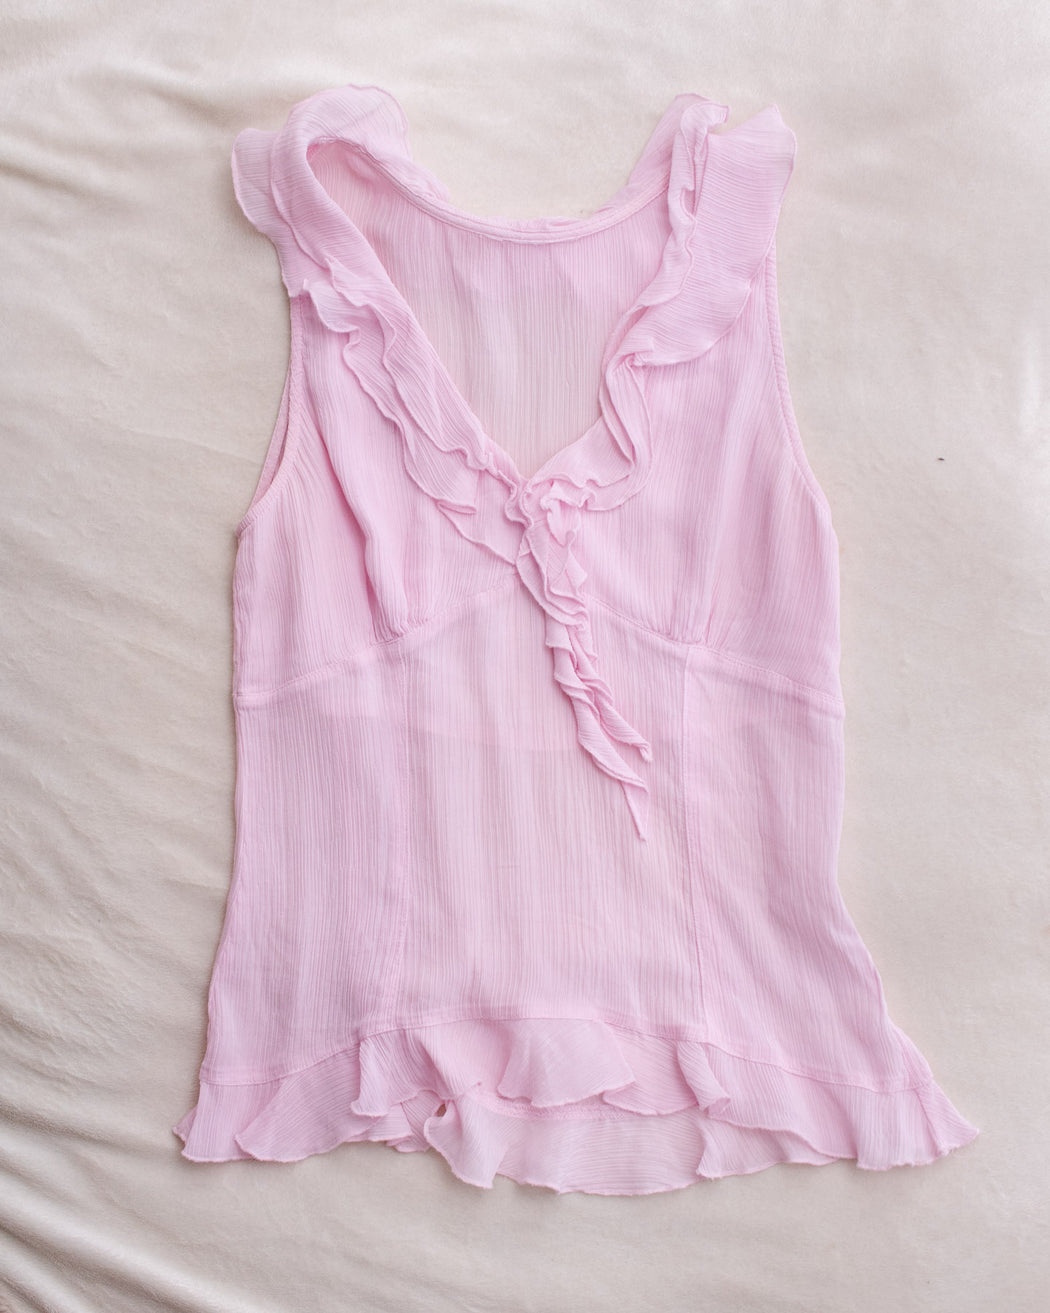 Ruffled Sleeveless Top